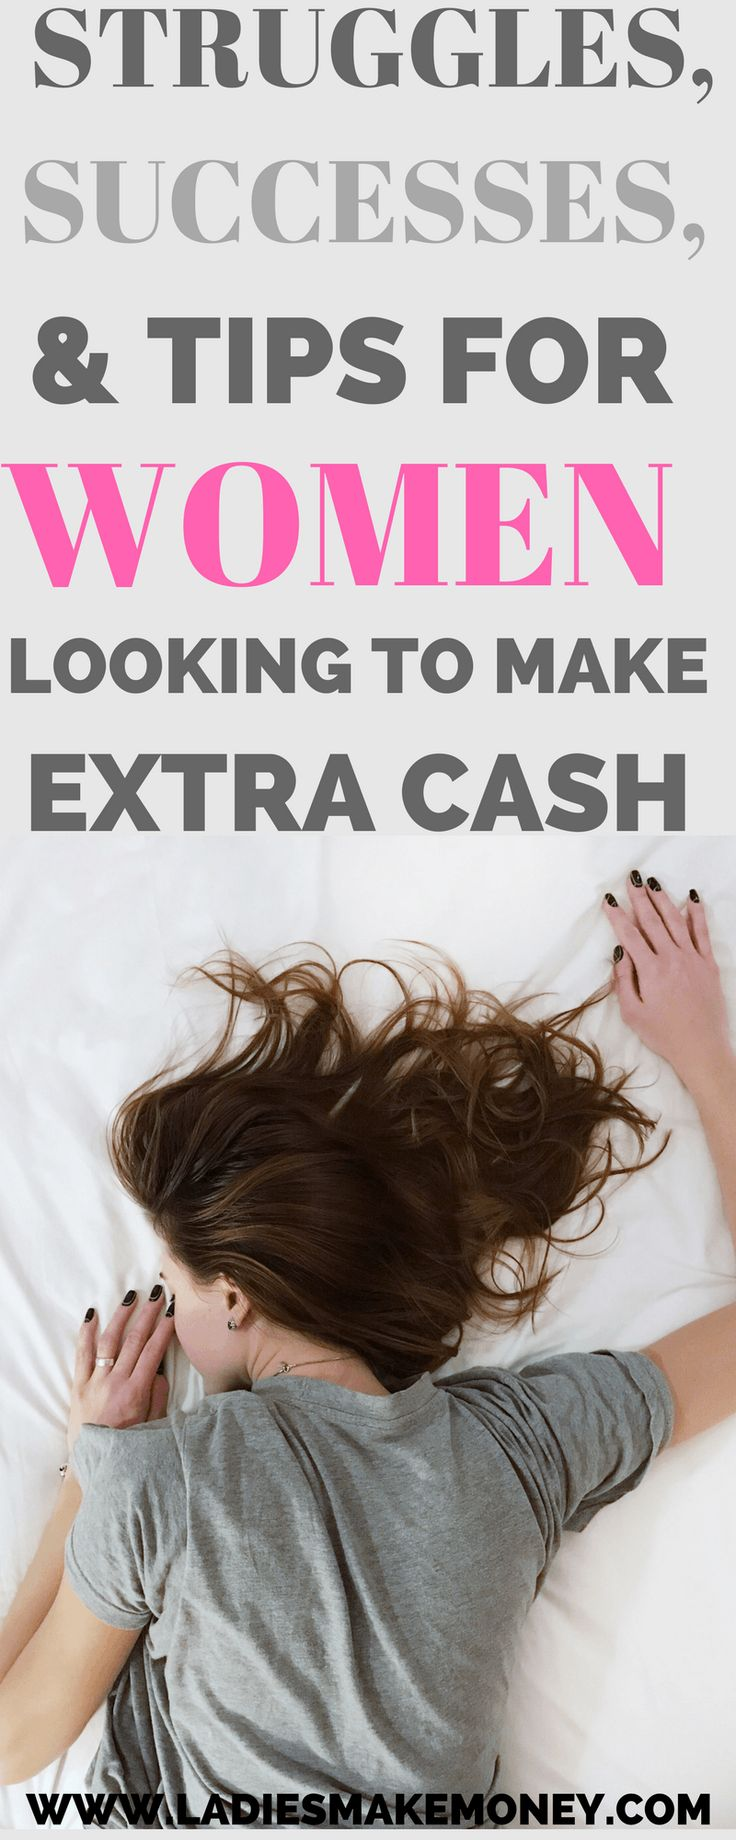 making extra money, Tips for women trying to make extra money on the side, making extra money at home at home for the stay at home mom, making extra money ideas for those that want to start a sidehustle, making extra money from home and increase your blog income, paying off debt on one income, how to sidehustle, sidehustles for women. #sidehustle #makingmoney #startablog